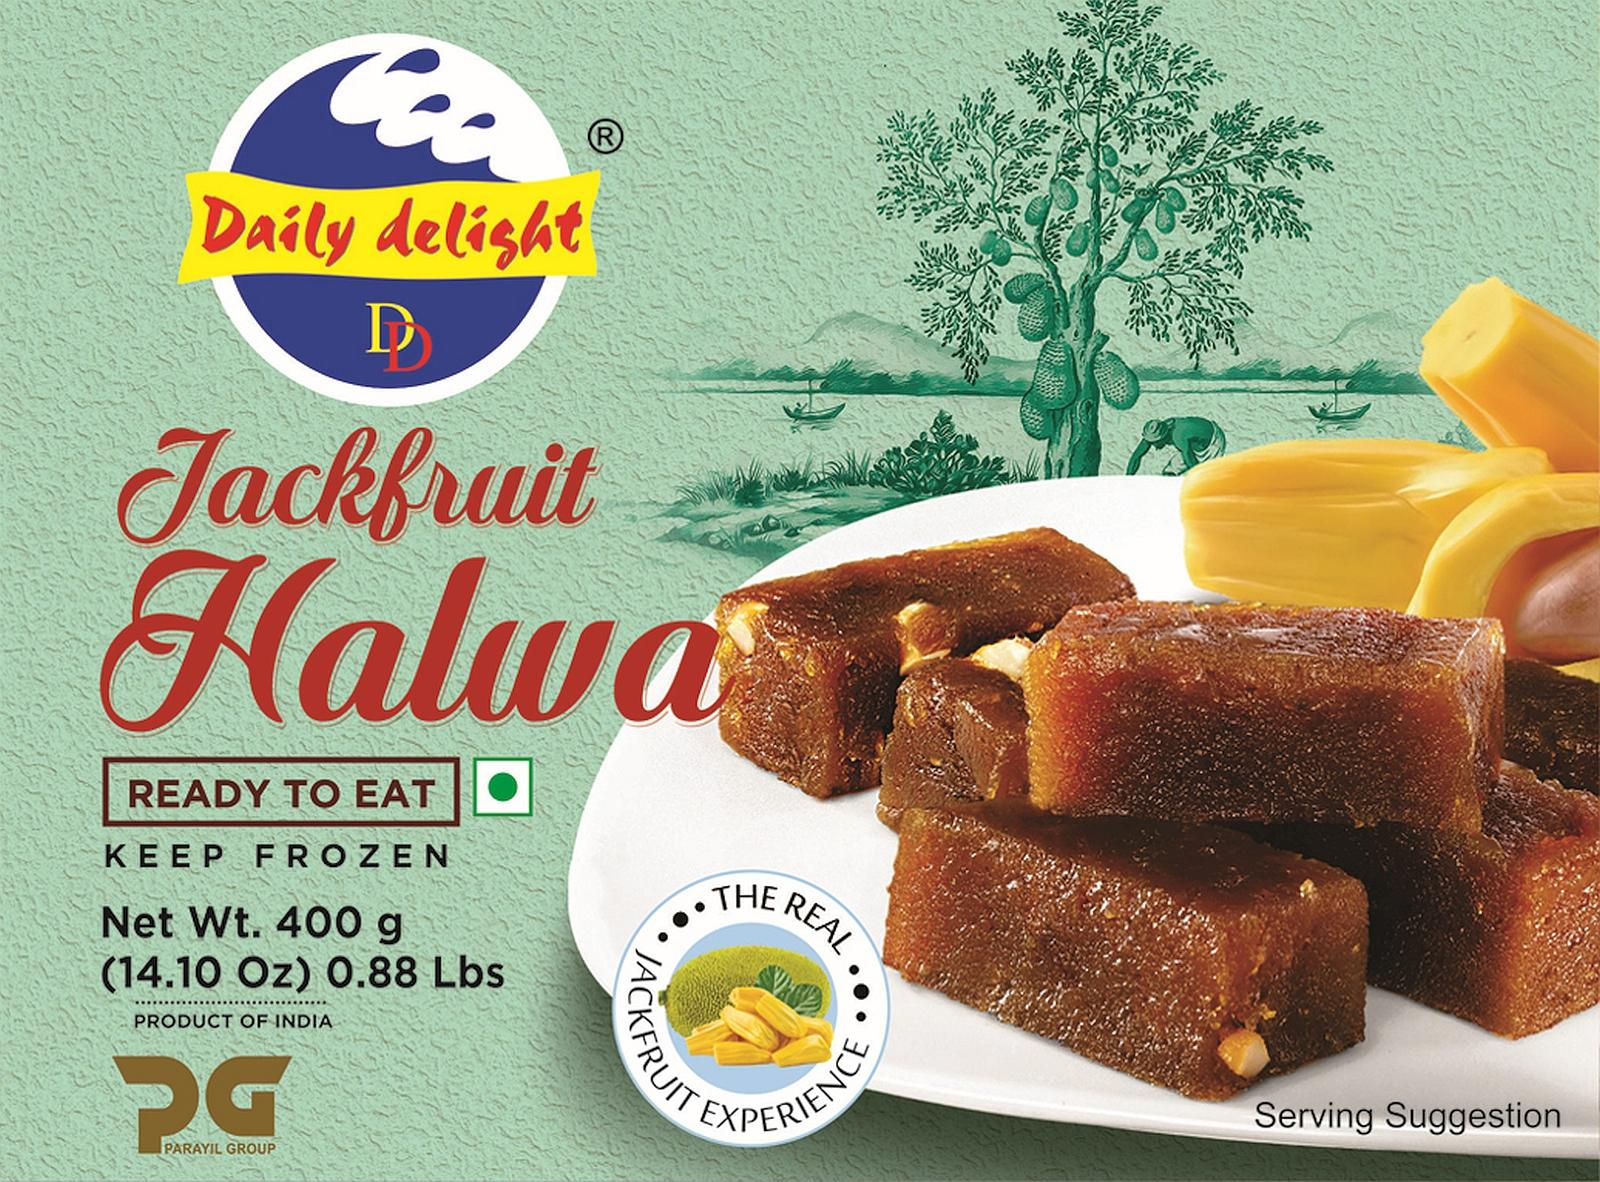 Daily Delight Halwa Jackfruit